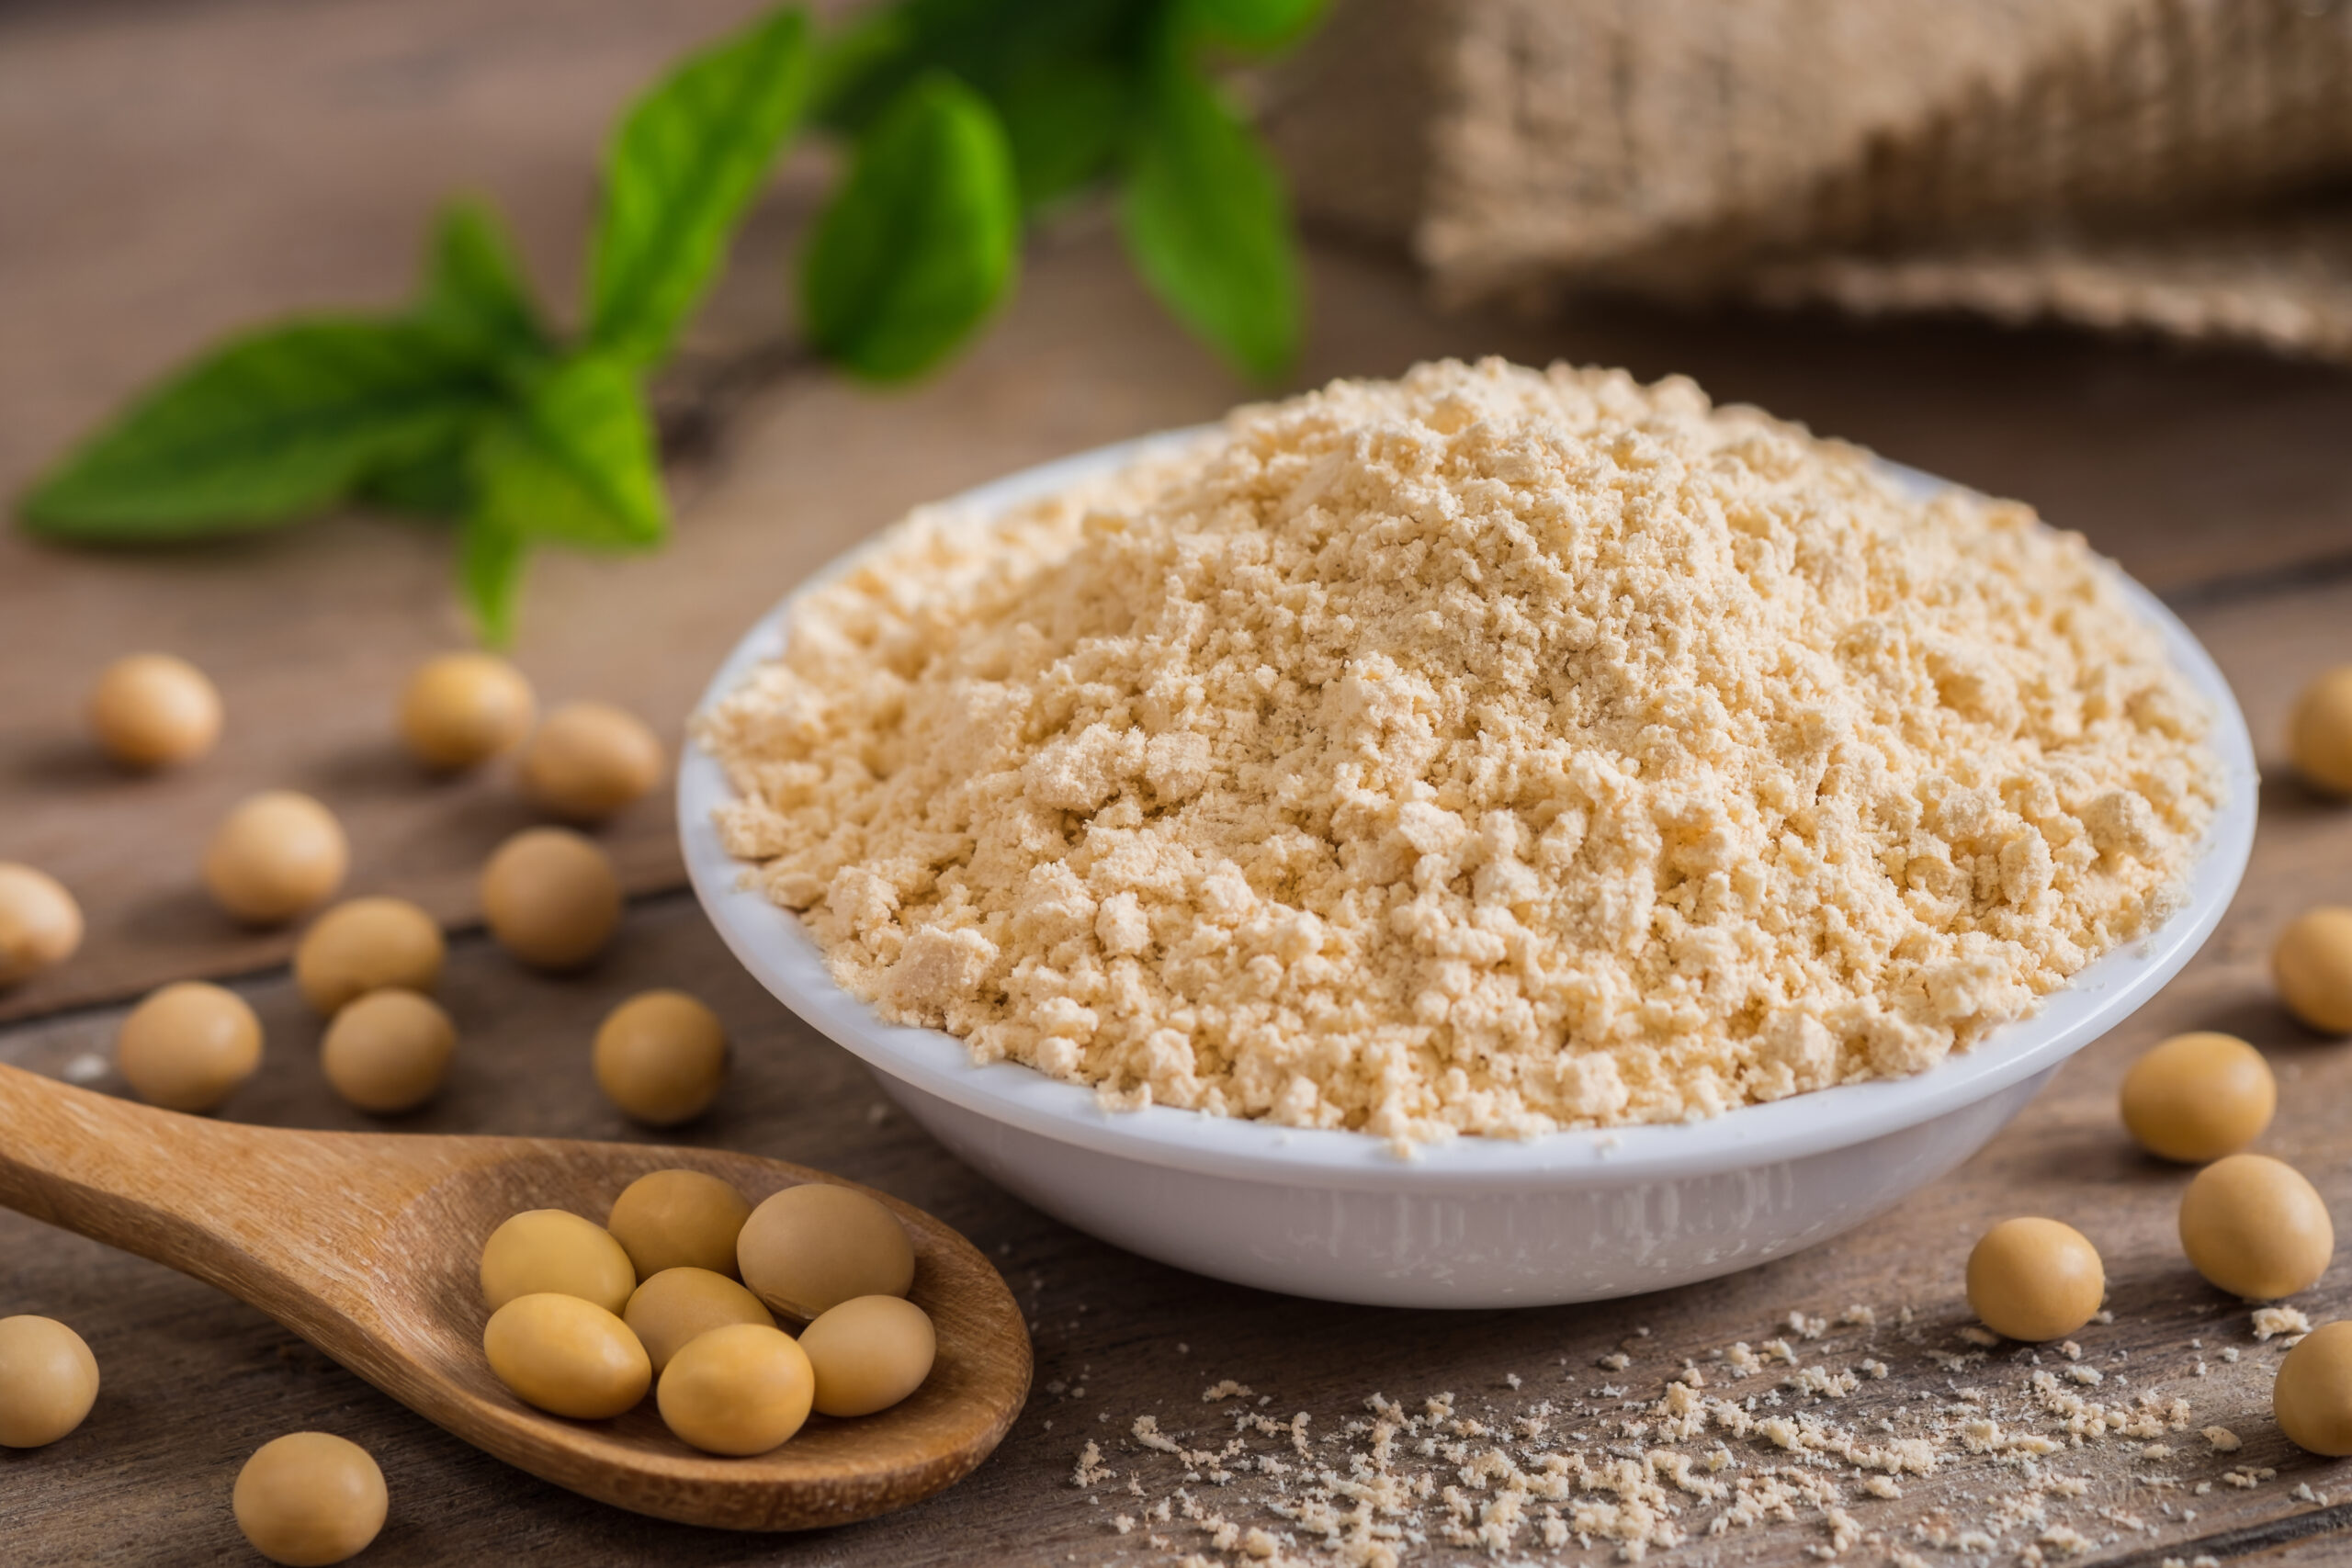 Soy-Based Protein Nutritional Supplements Garner Positive Reviews